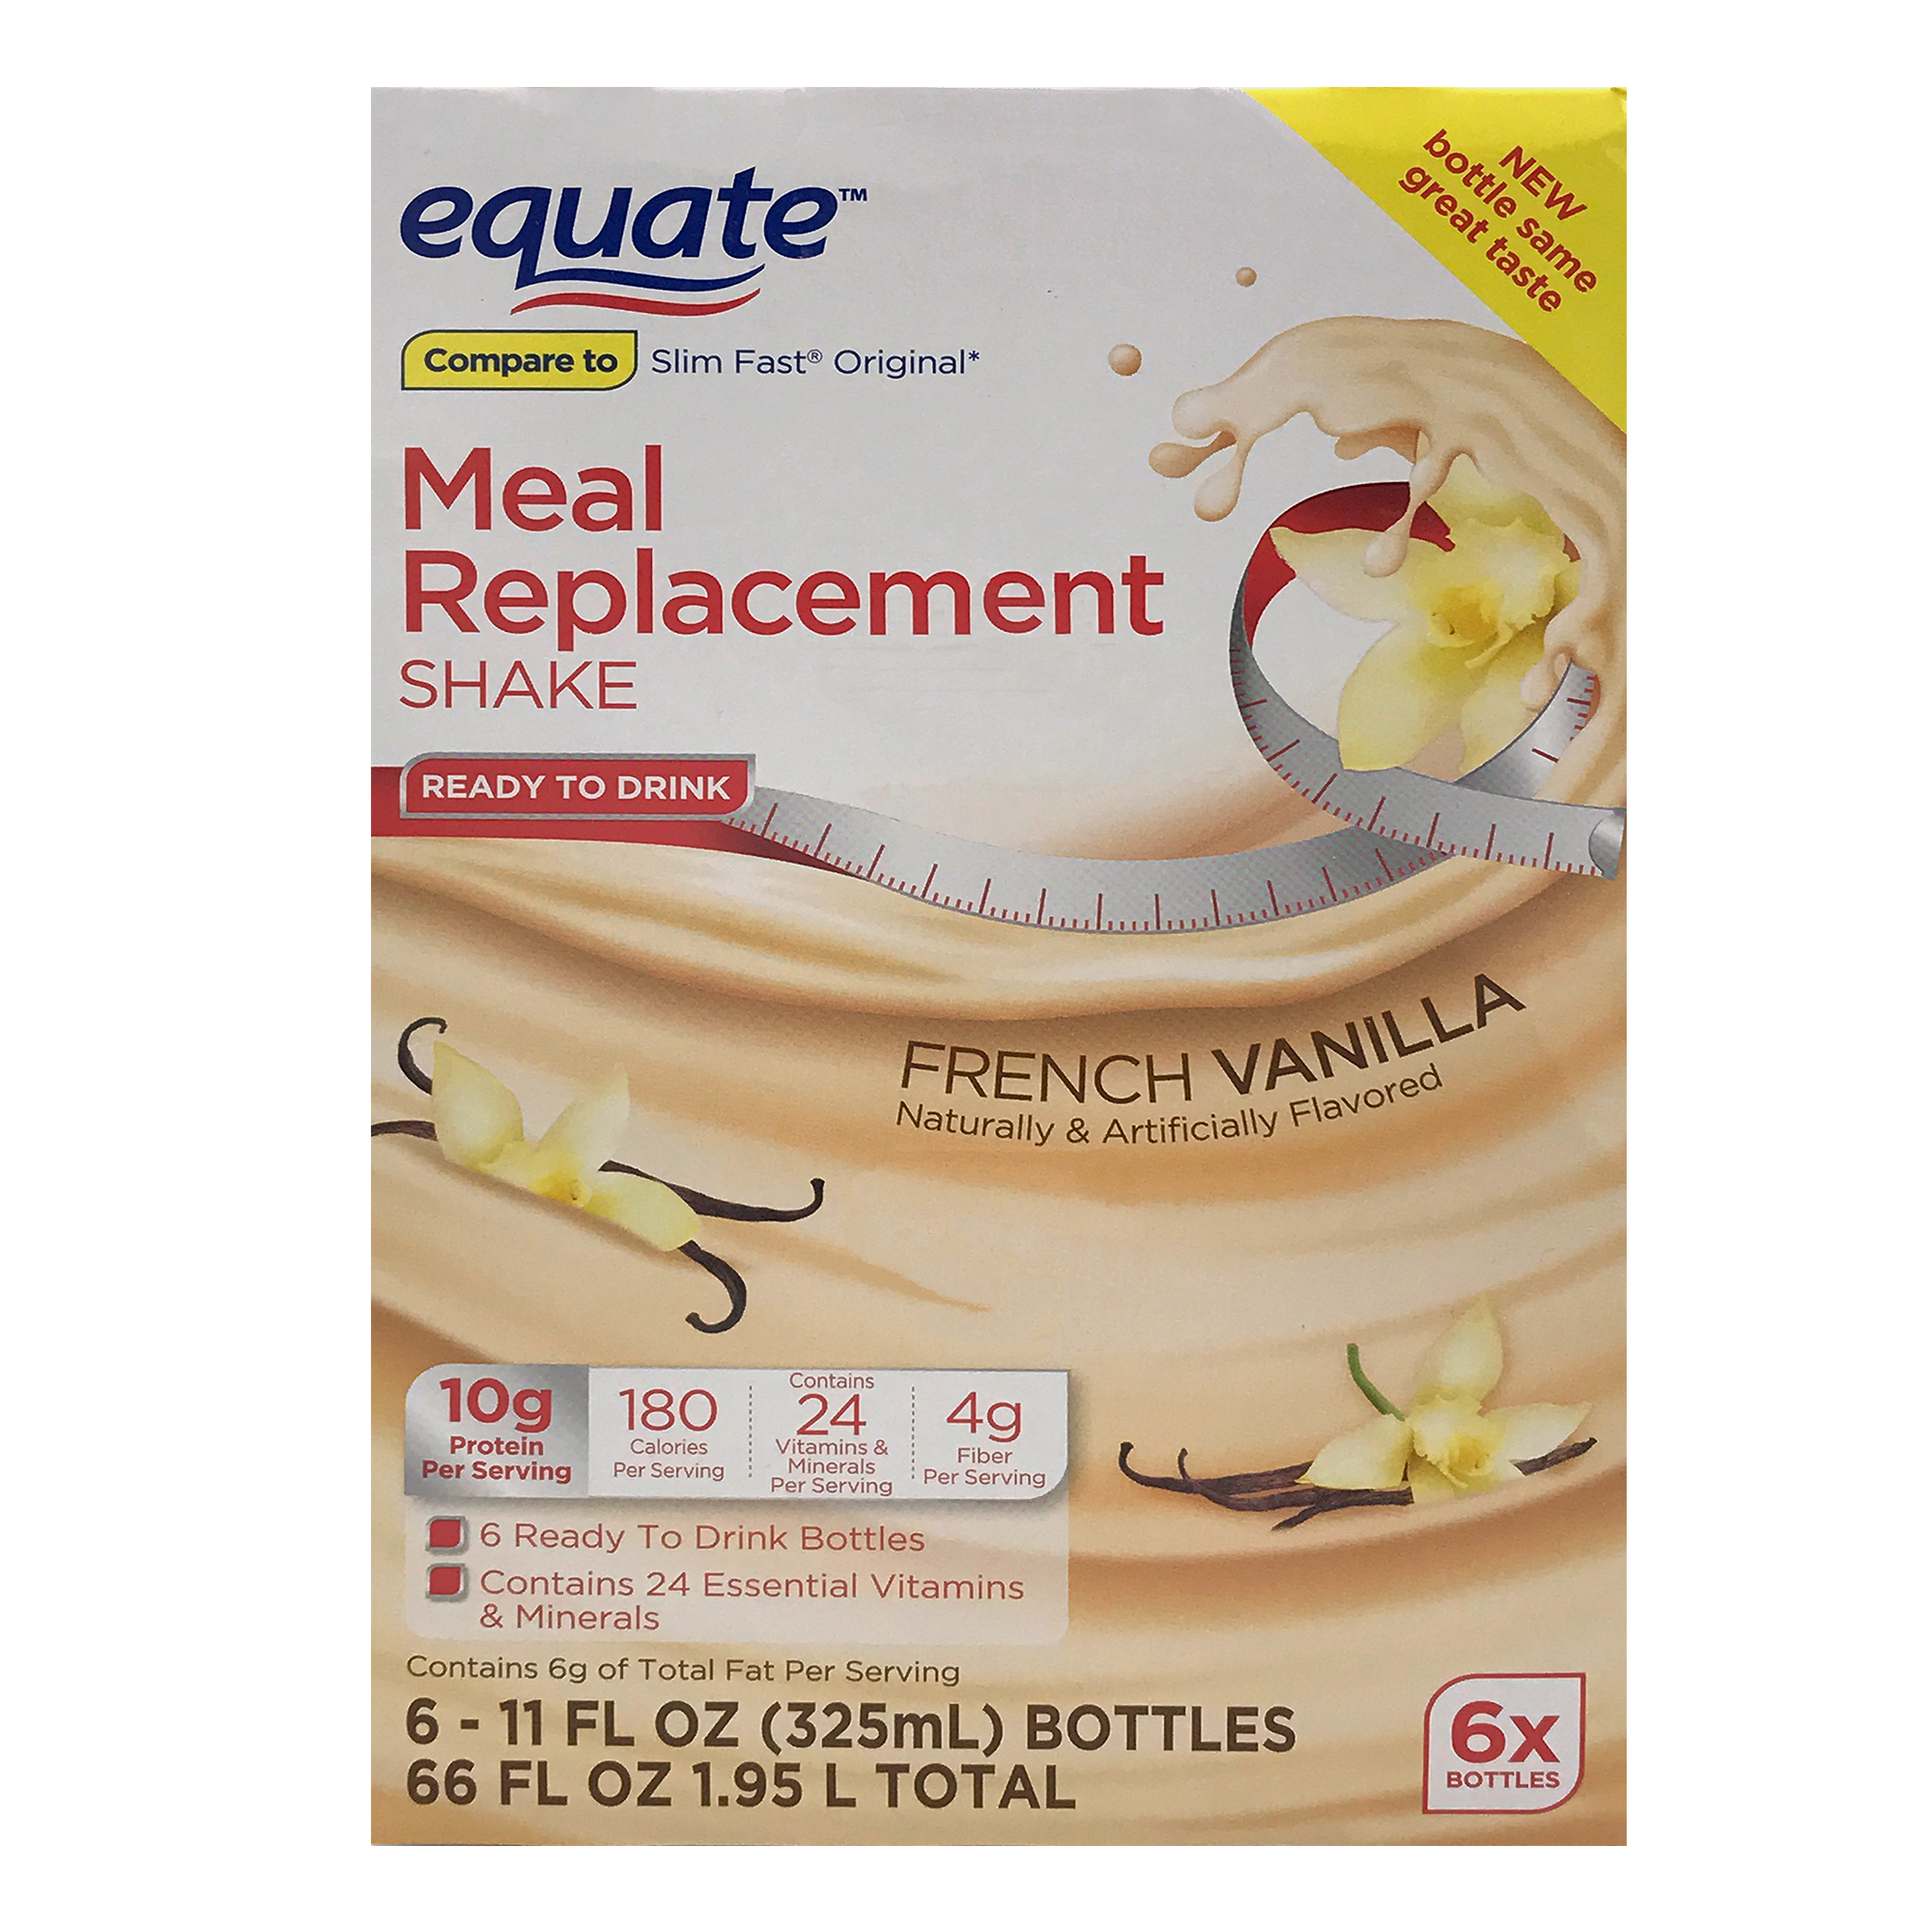 Advantages & Disadvantages of Meal Replacement Shakes